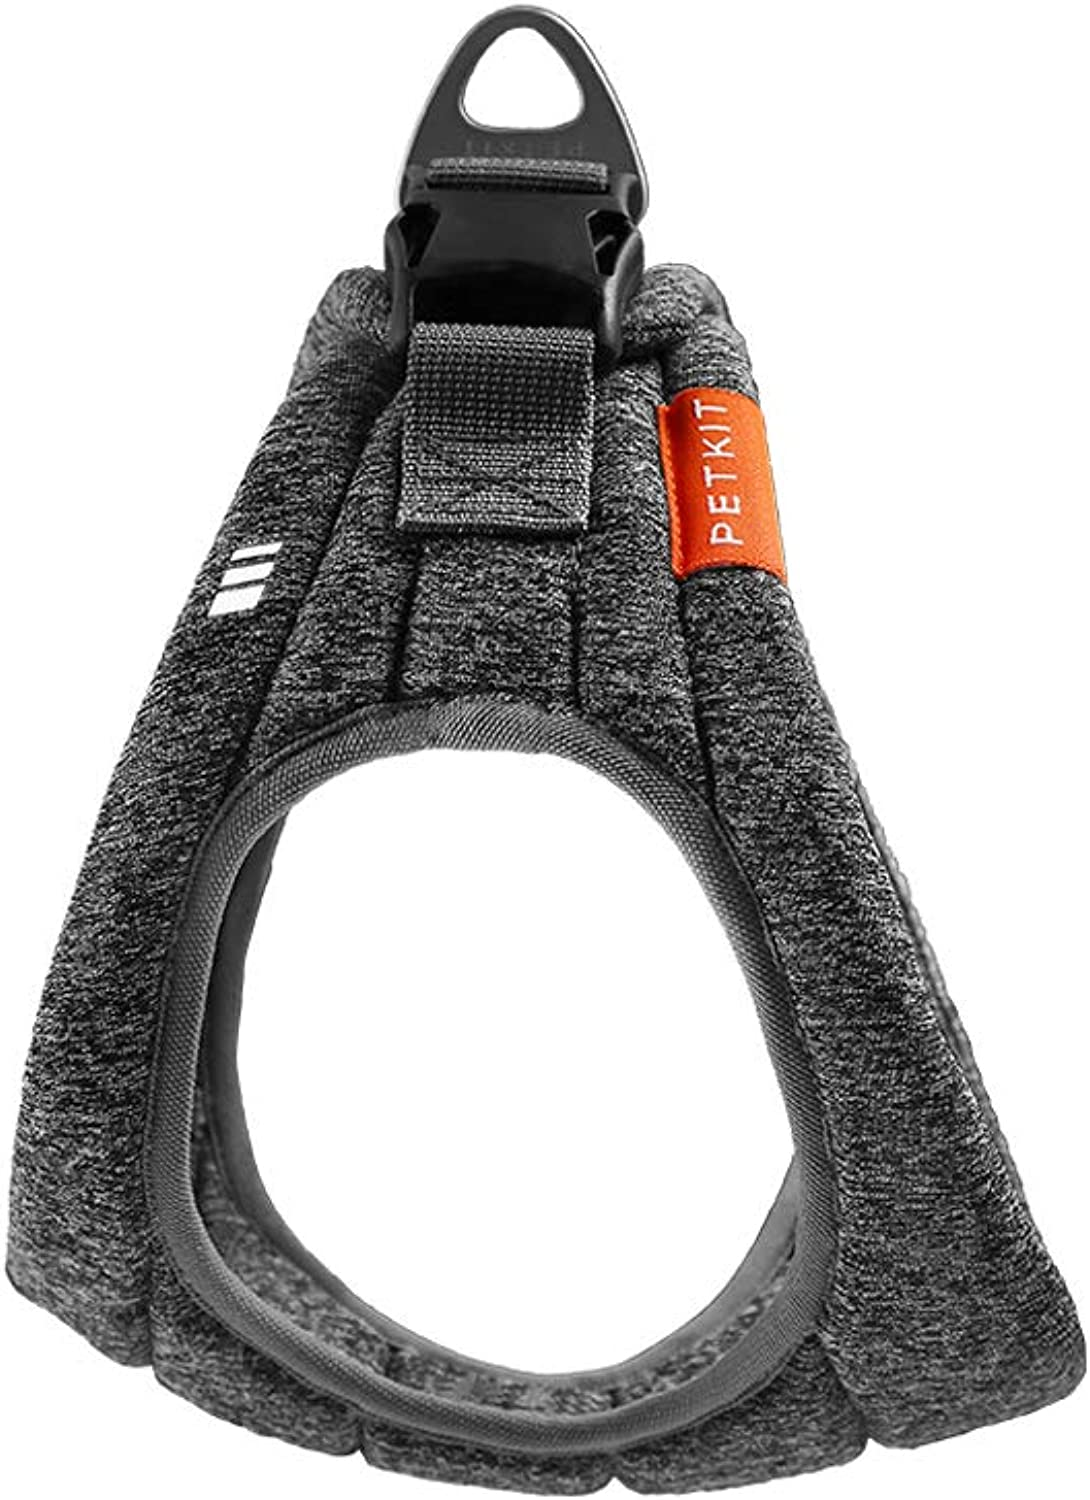 3M Reflective Pets Small Dogs Puppy Cats Vest Harness Chest Adjustable Front And Anti Back Range Leading With Handle Soft Padded Breathable Mesh Waterproof Safety Double Metal Zincalloy D Ring For Ou